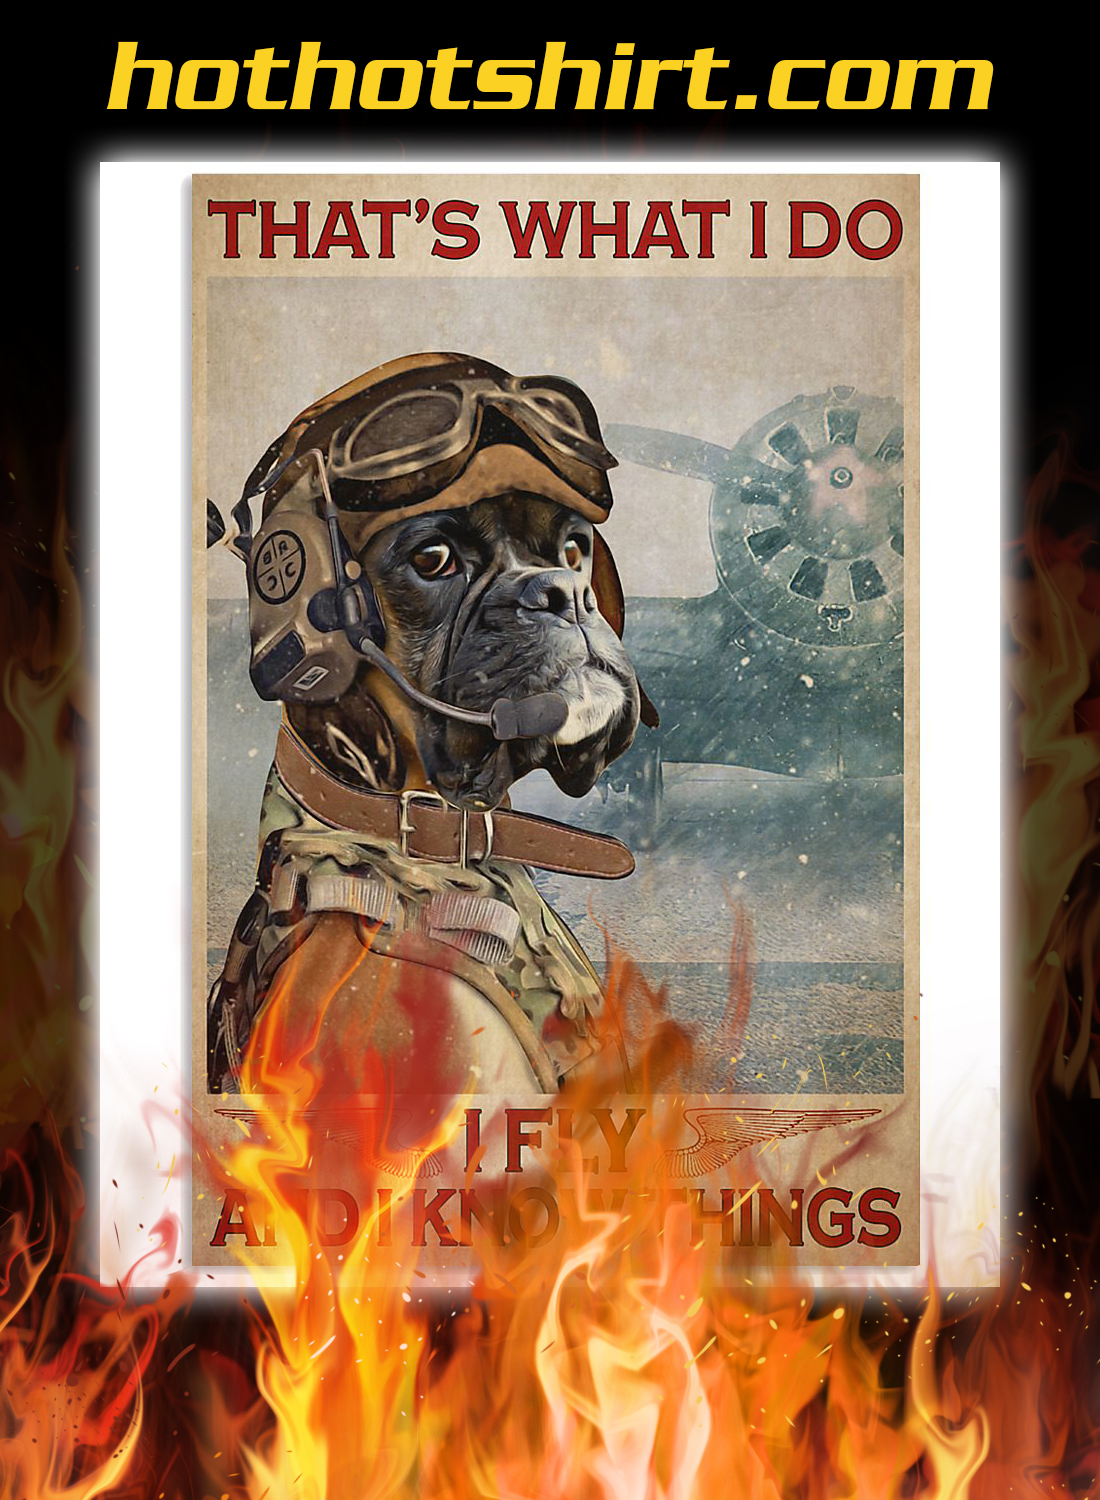 Boxer dog that's what i do i fly and i know things poster 1